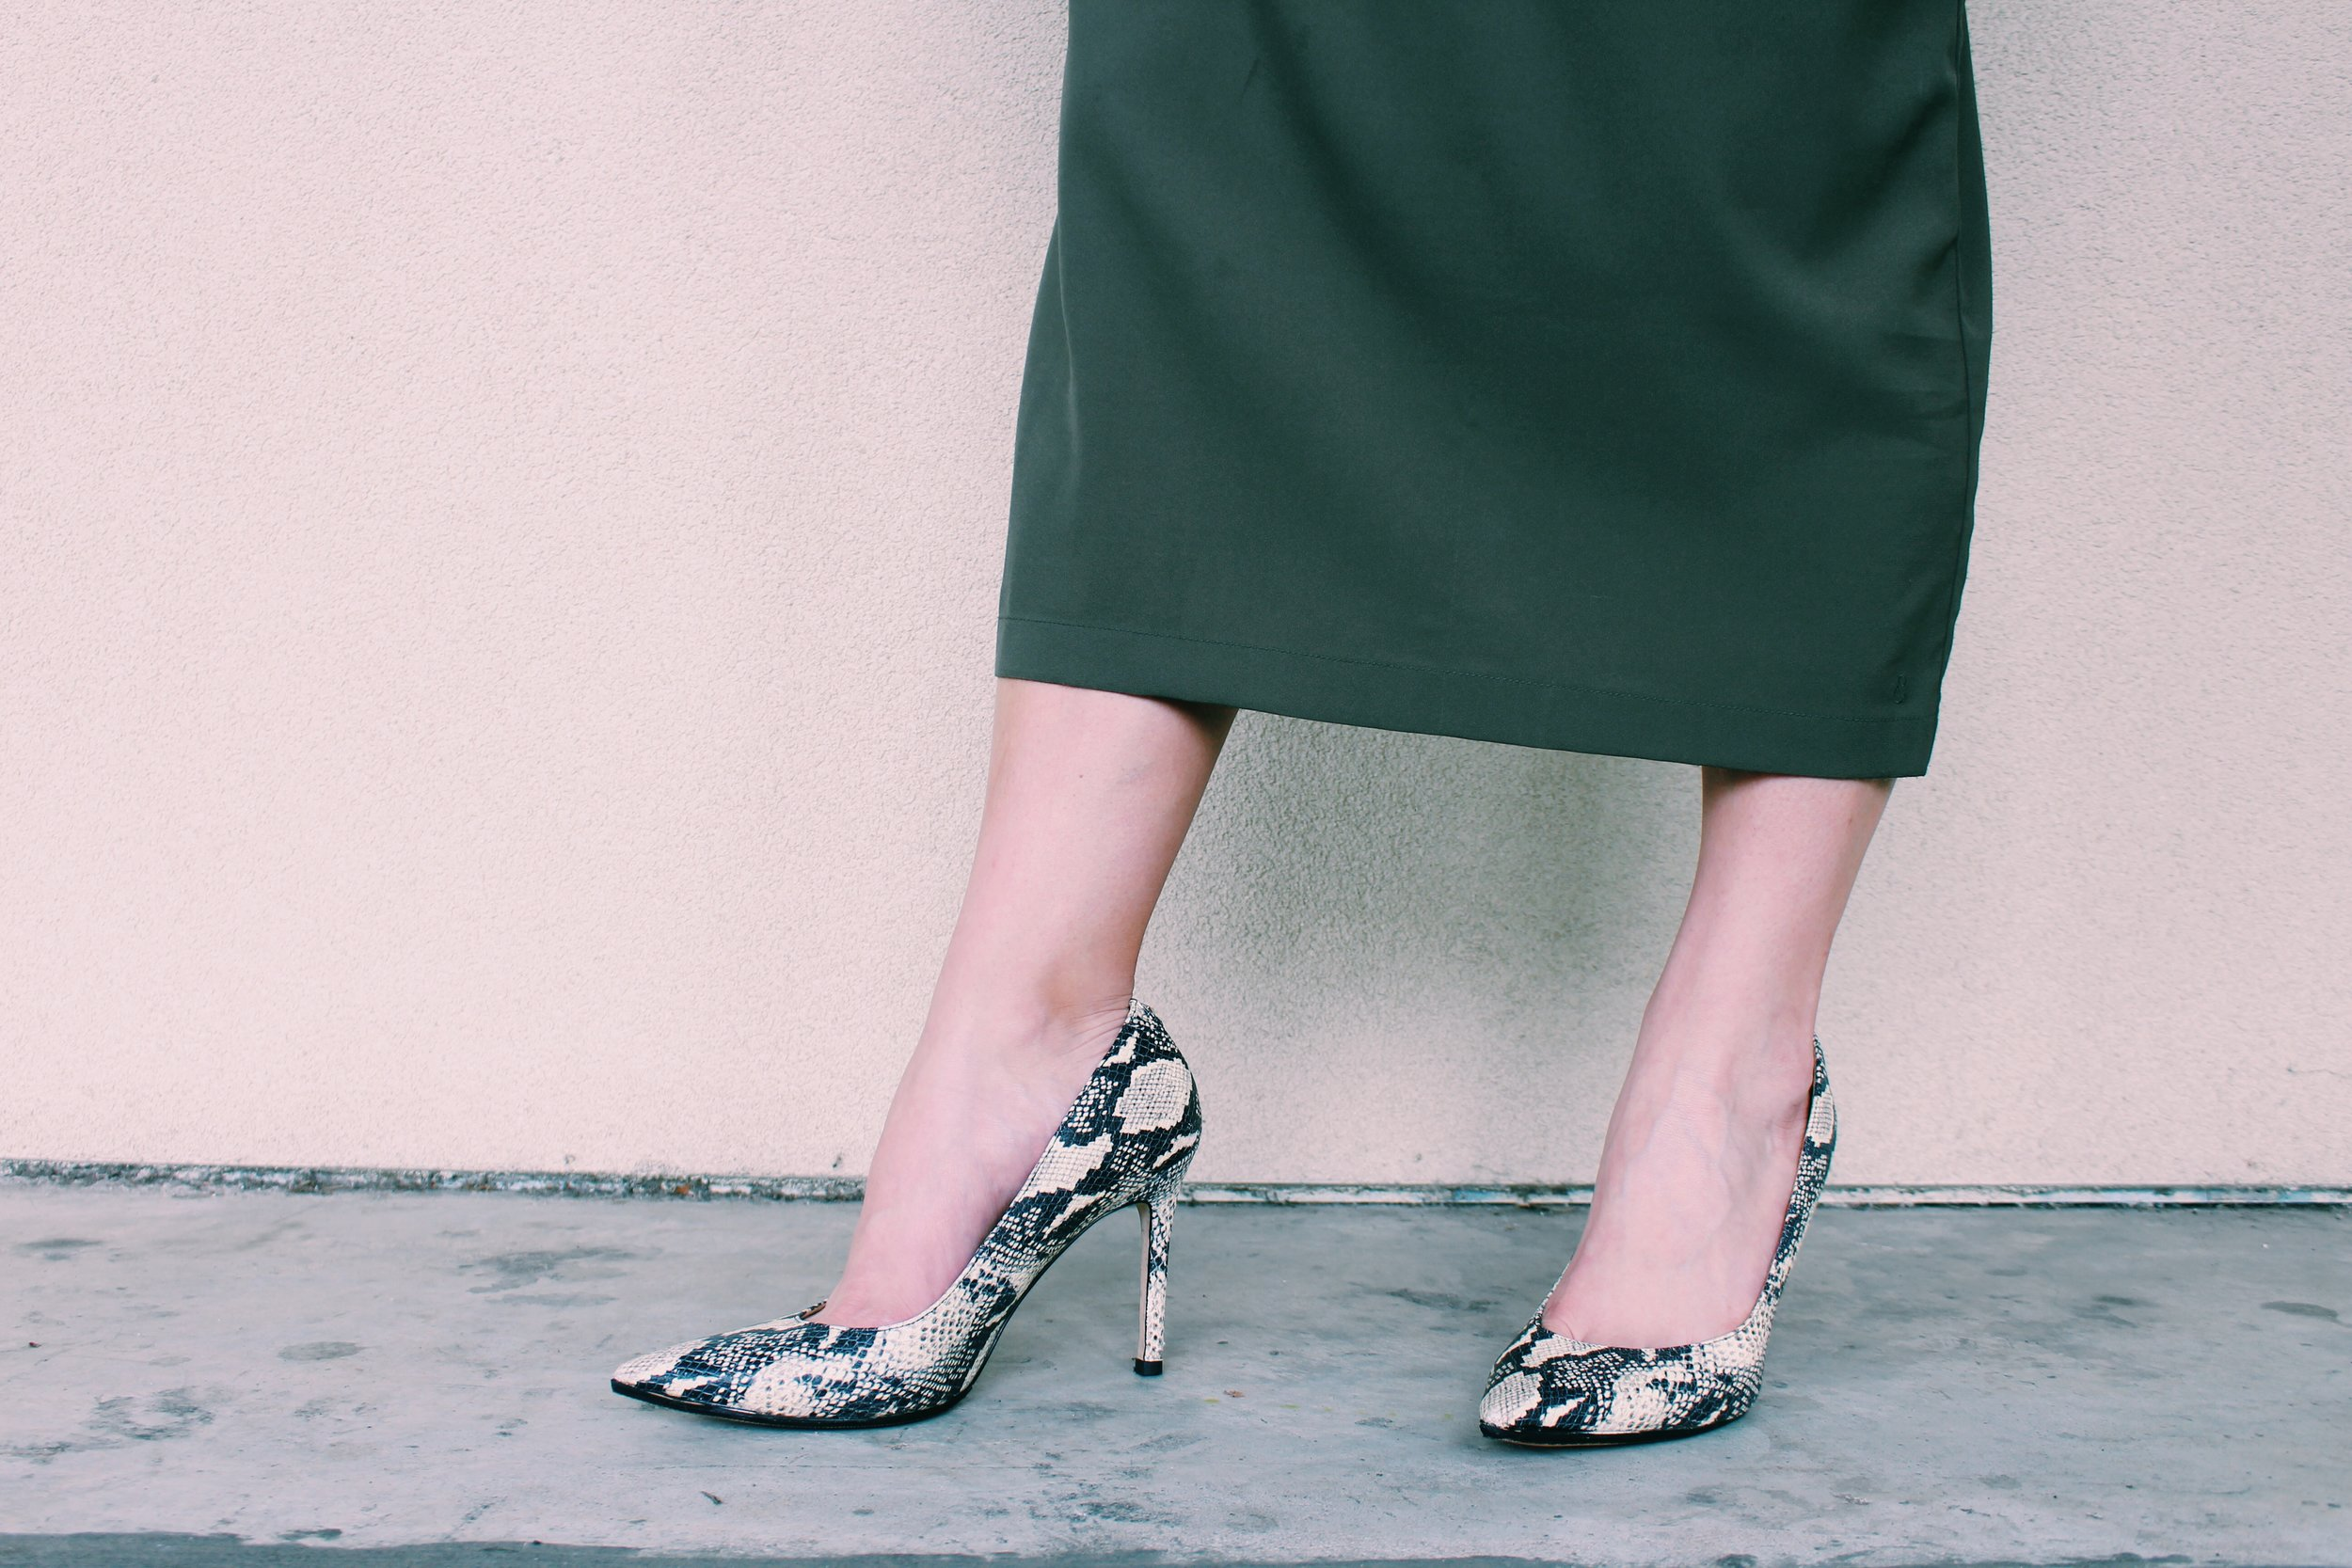 Want to add power to your Austin office look? Try a pointed-toe pump with everything from jeans to suits to create a look that commands respect and attention.